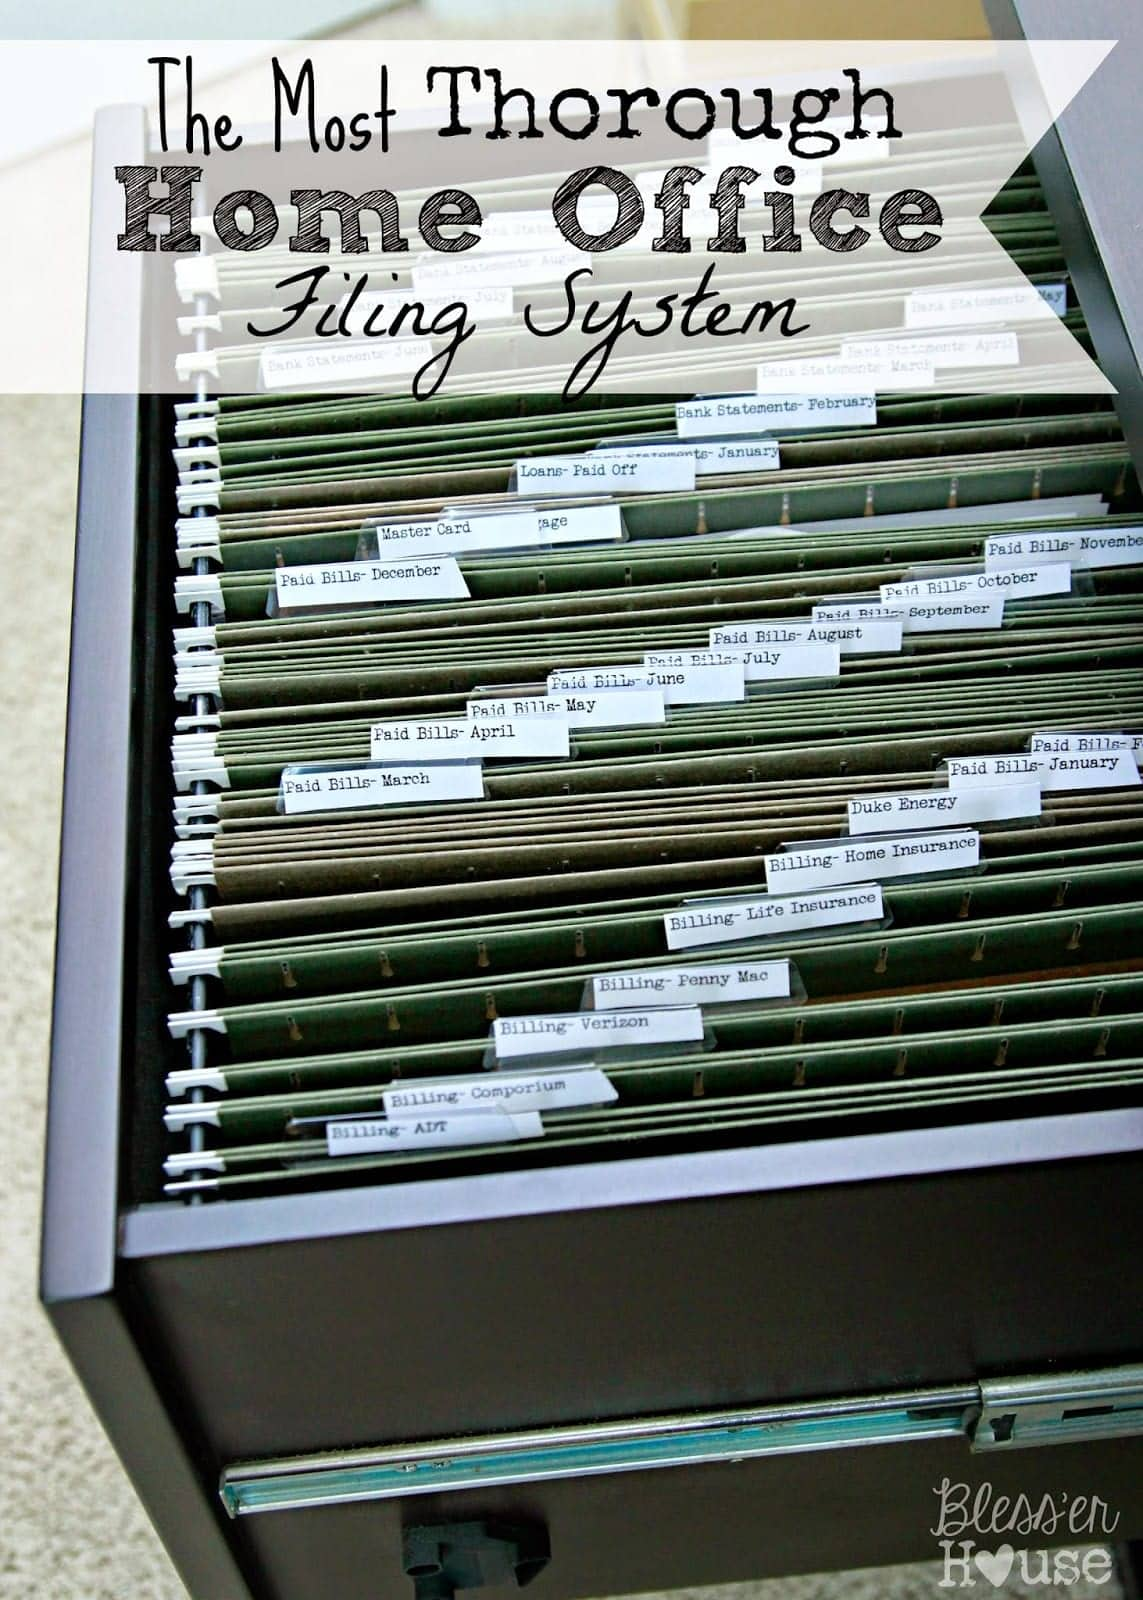 Amazing Organizing The Most Thorough Home Office Filing System   Blessu0027er House